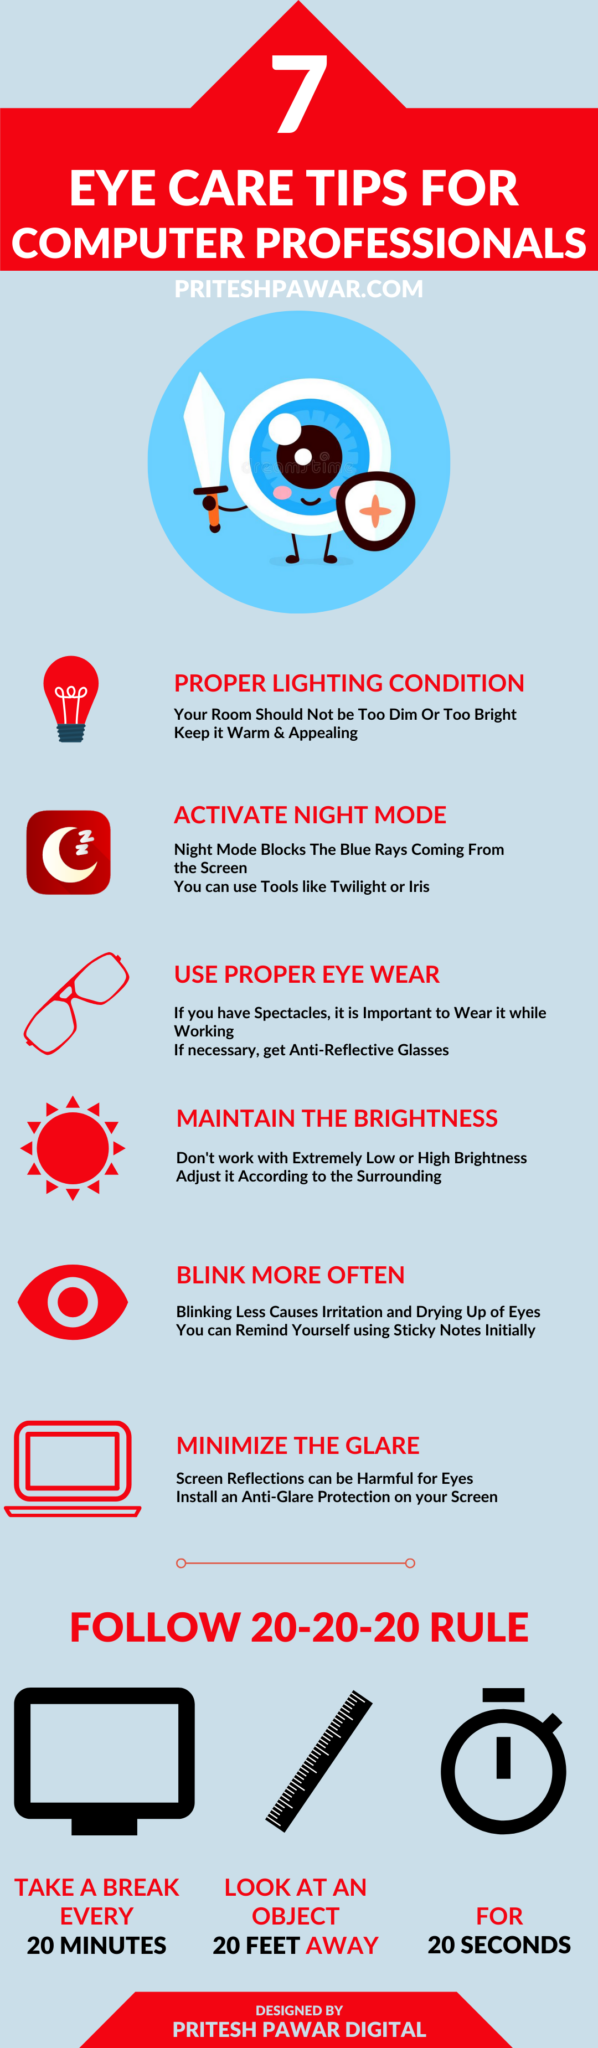 Eye Care Tips Infographic For Computer Professionals